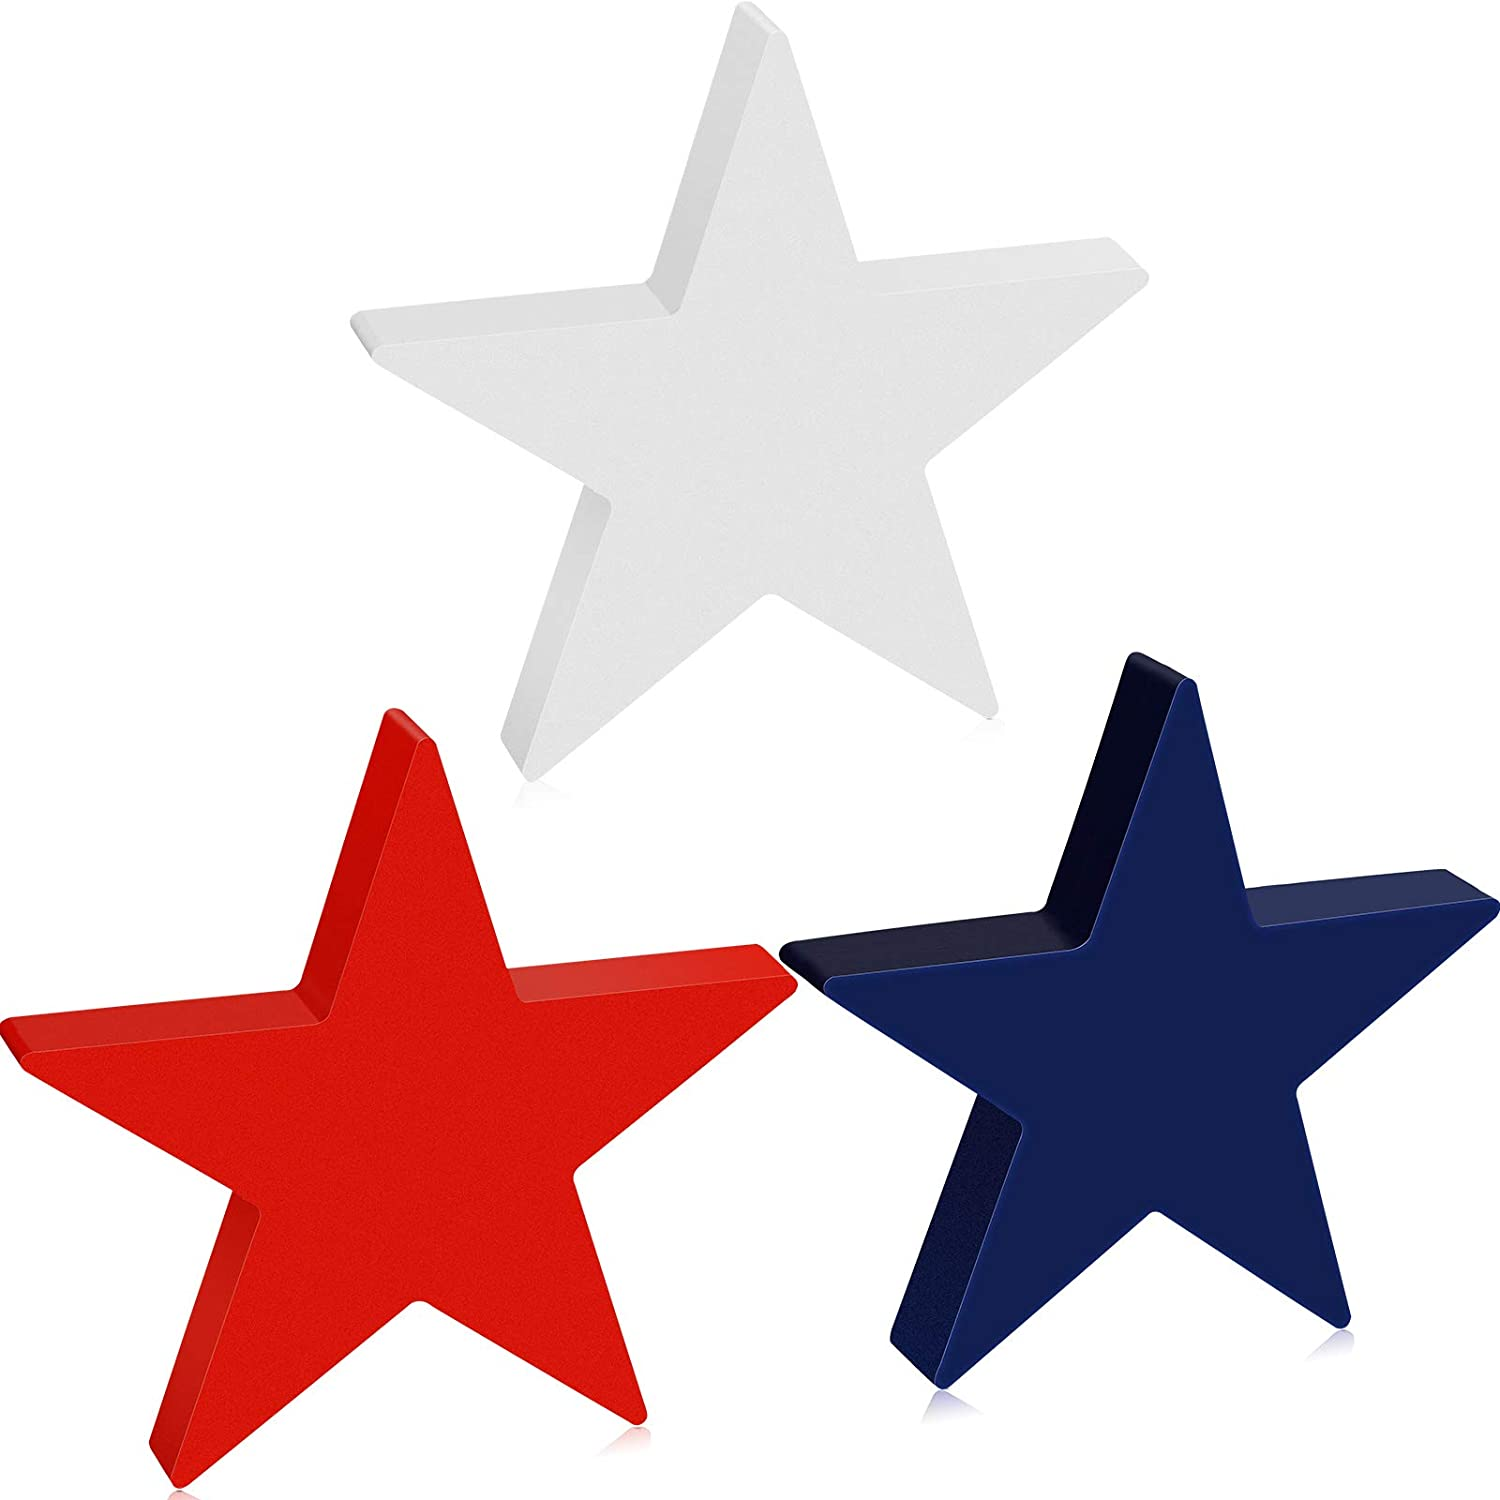 Youyole 3 Pieces Independence Day Wooden Star Blocks Patriotic Wood Star Standing Blocks 4th of July Tabletop Decor for American Festival Celebration Home Decor (Pure Color Series)